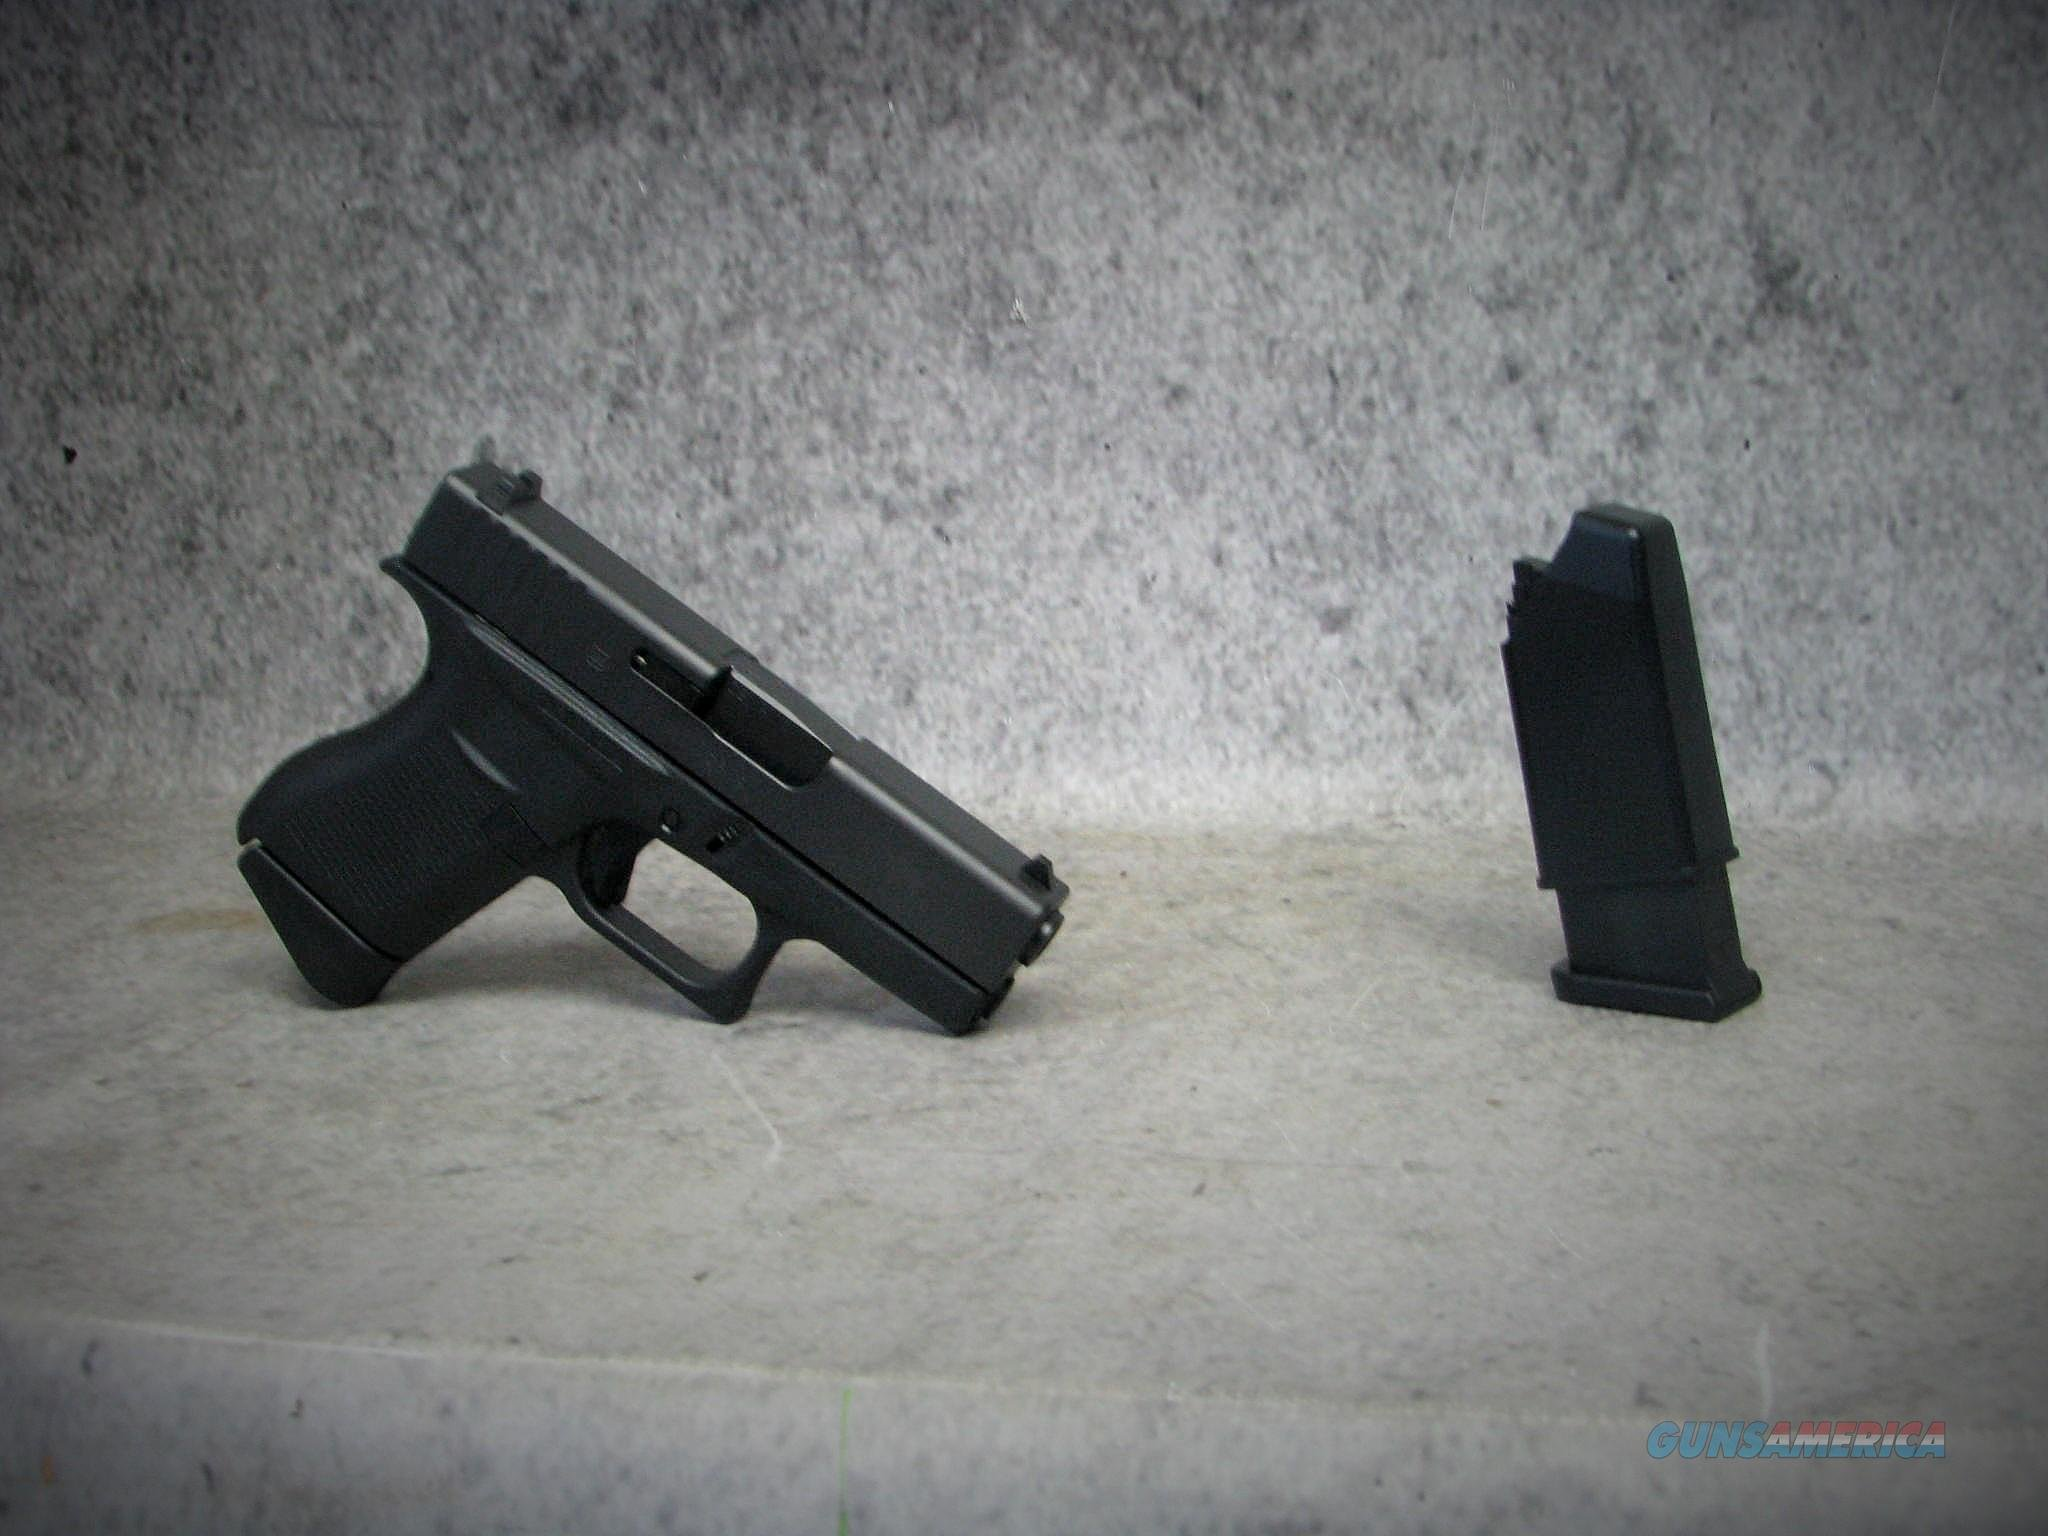 dating a glock pistol It was imnported in about january 2000, according to the only open source data base of serial numbers that i know of showthreadphpt=1287557 if you contact glock in smyrna, ga, they will tell you the exact import date glock, inc 6000 highlands parkway smyrna, ga 30082 usa.